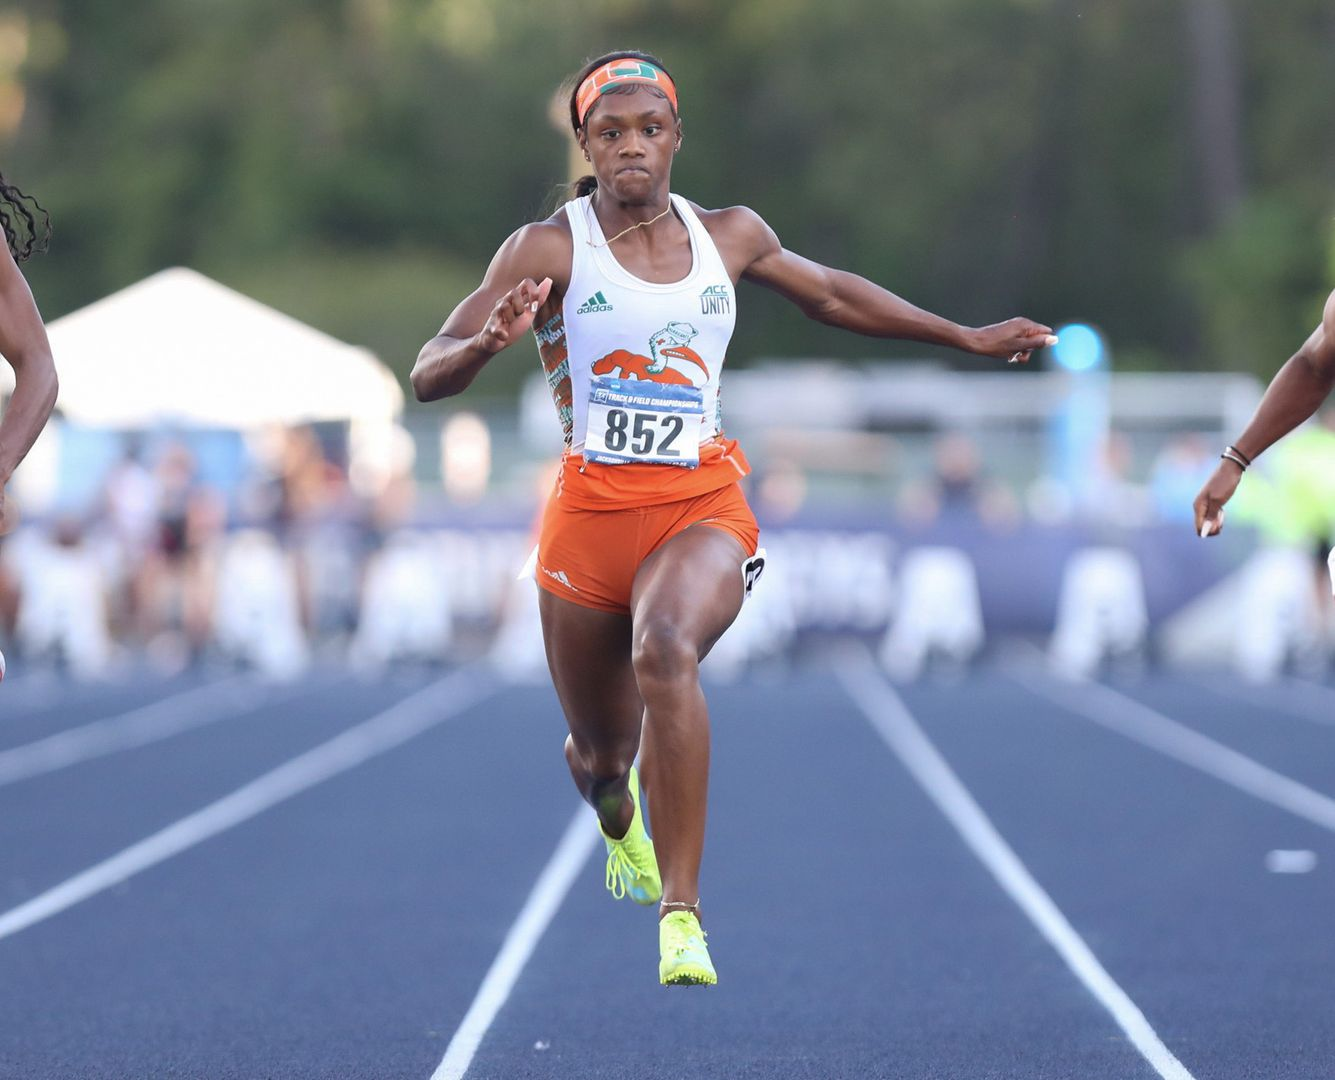 Canes are Headed to Eugene